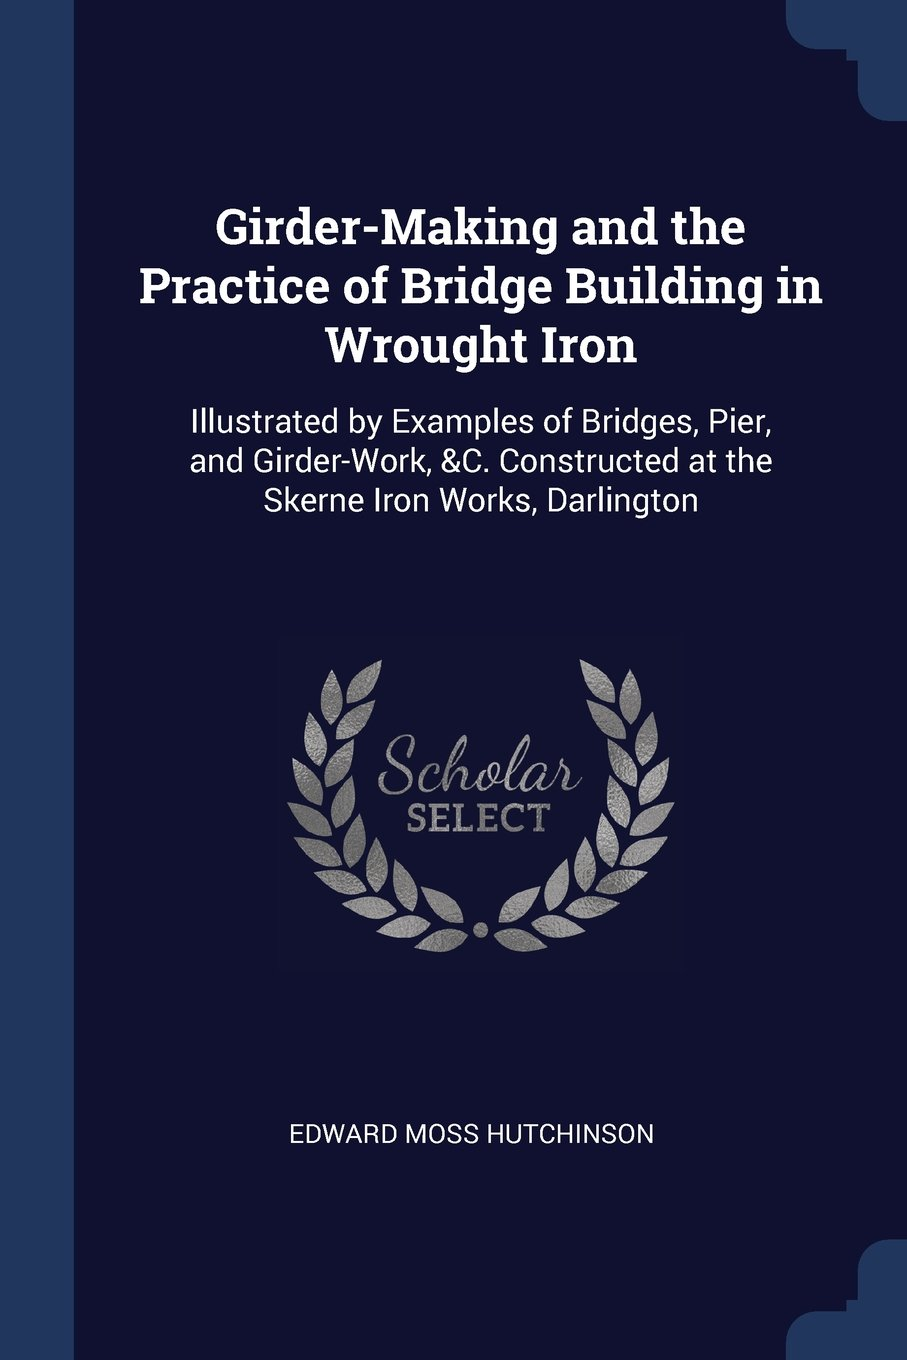 Girder-Making and the Practice of Bridge Building in Wrought Iron: Illustrated by Examples of Bridges, Pier, and Girder-Work, C. Constructed at the Skerne Iron Works, Darlington pdf epub